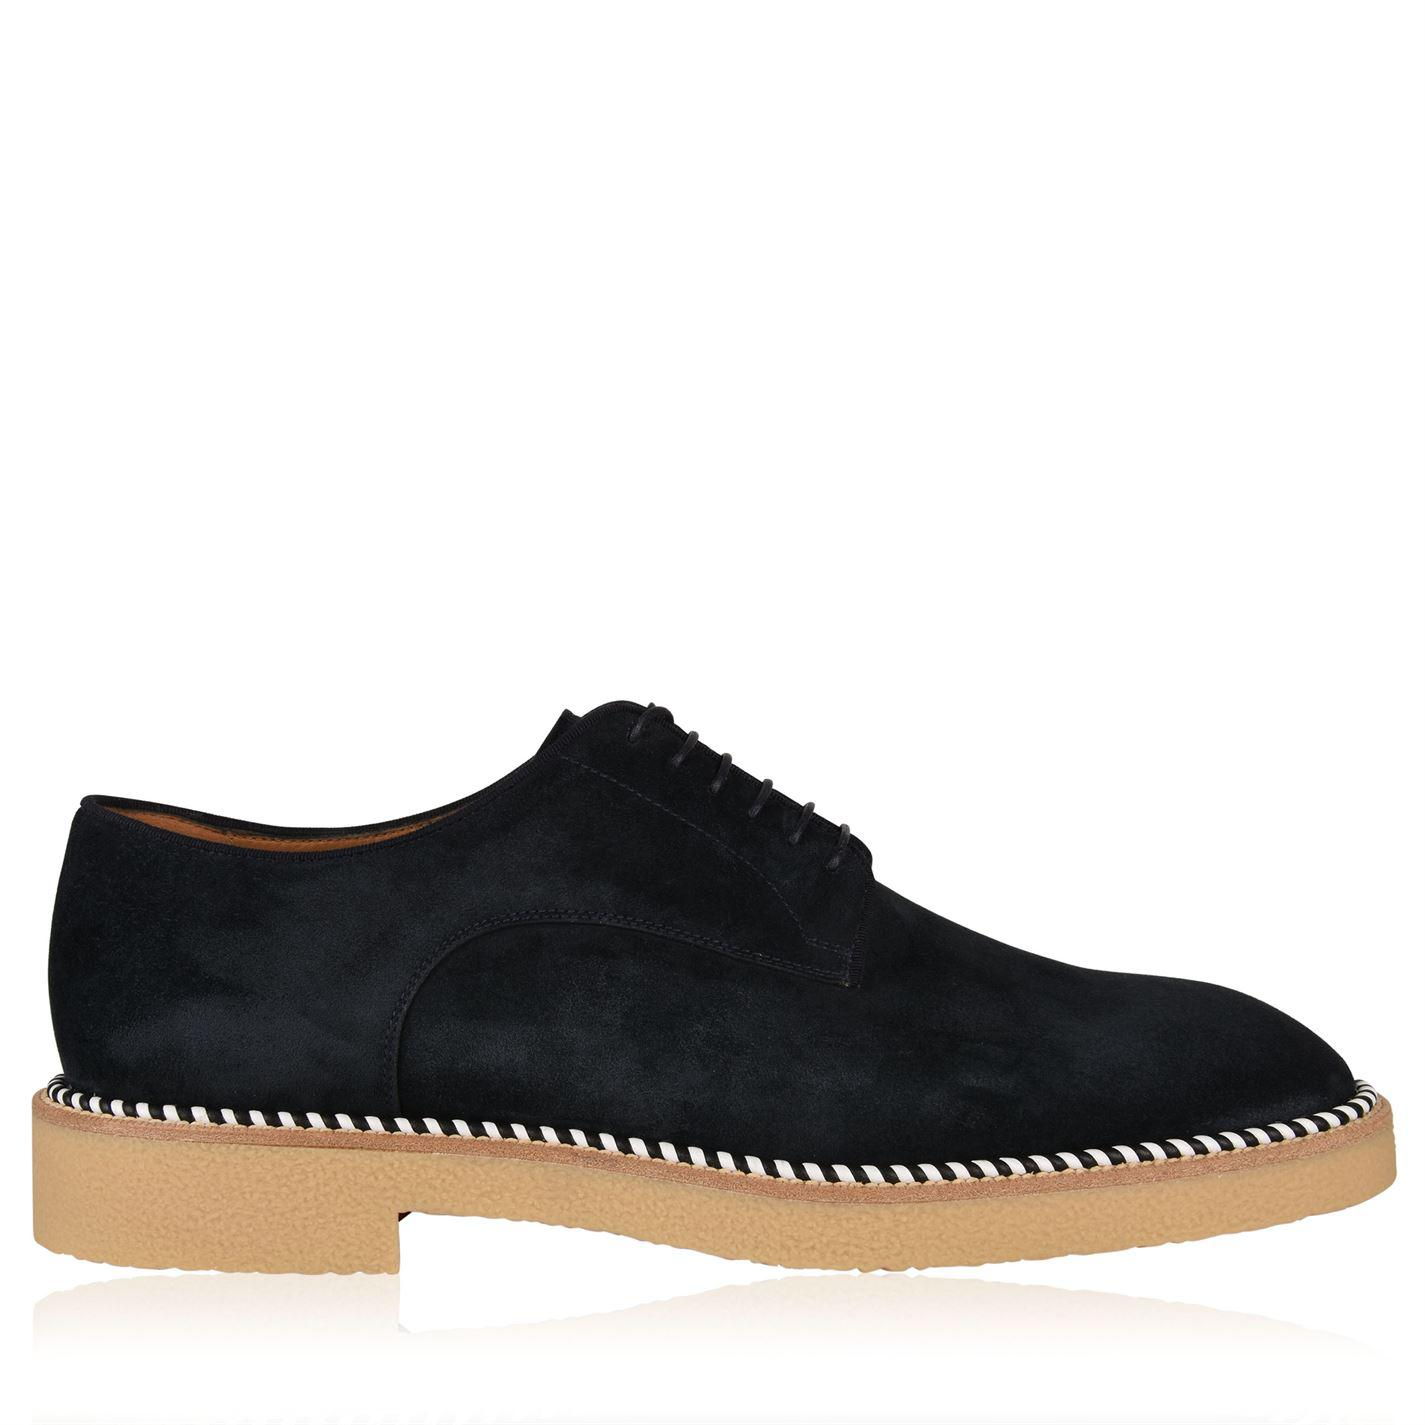 CHRISTIAN LOUBOUTIN Derbis low